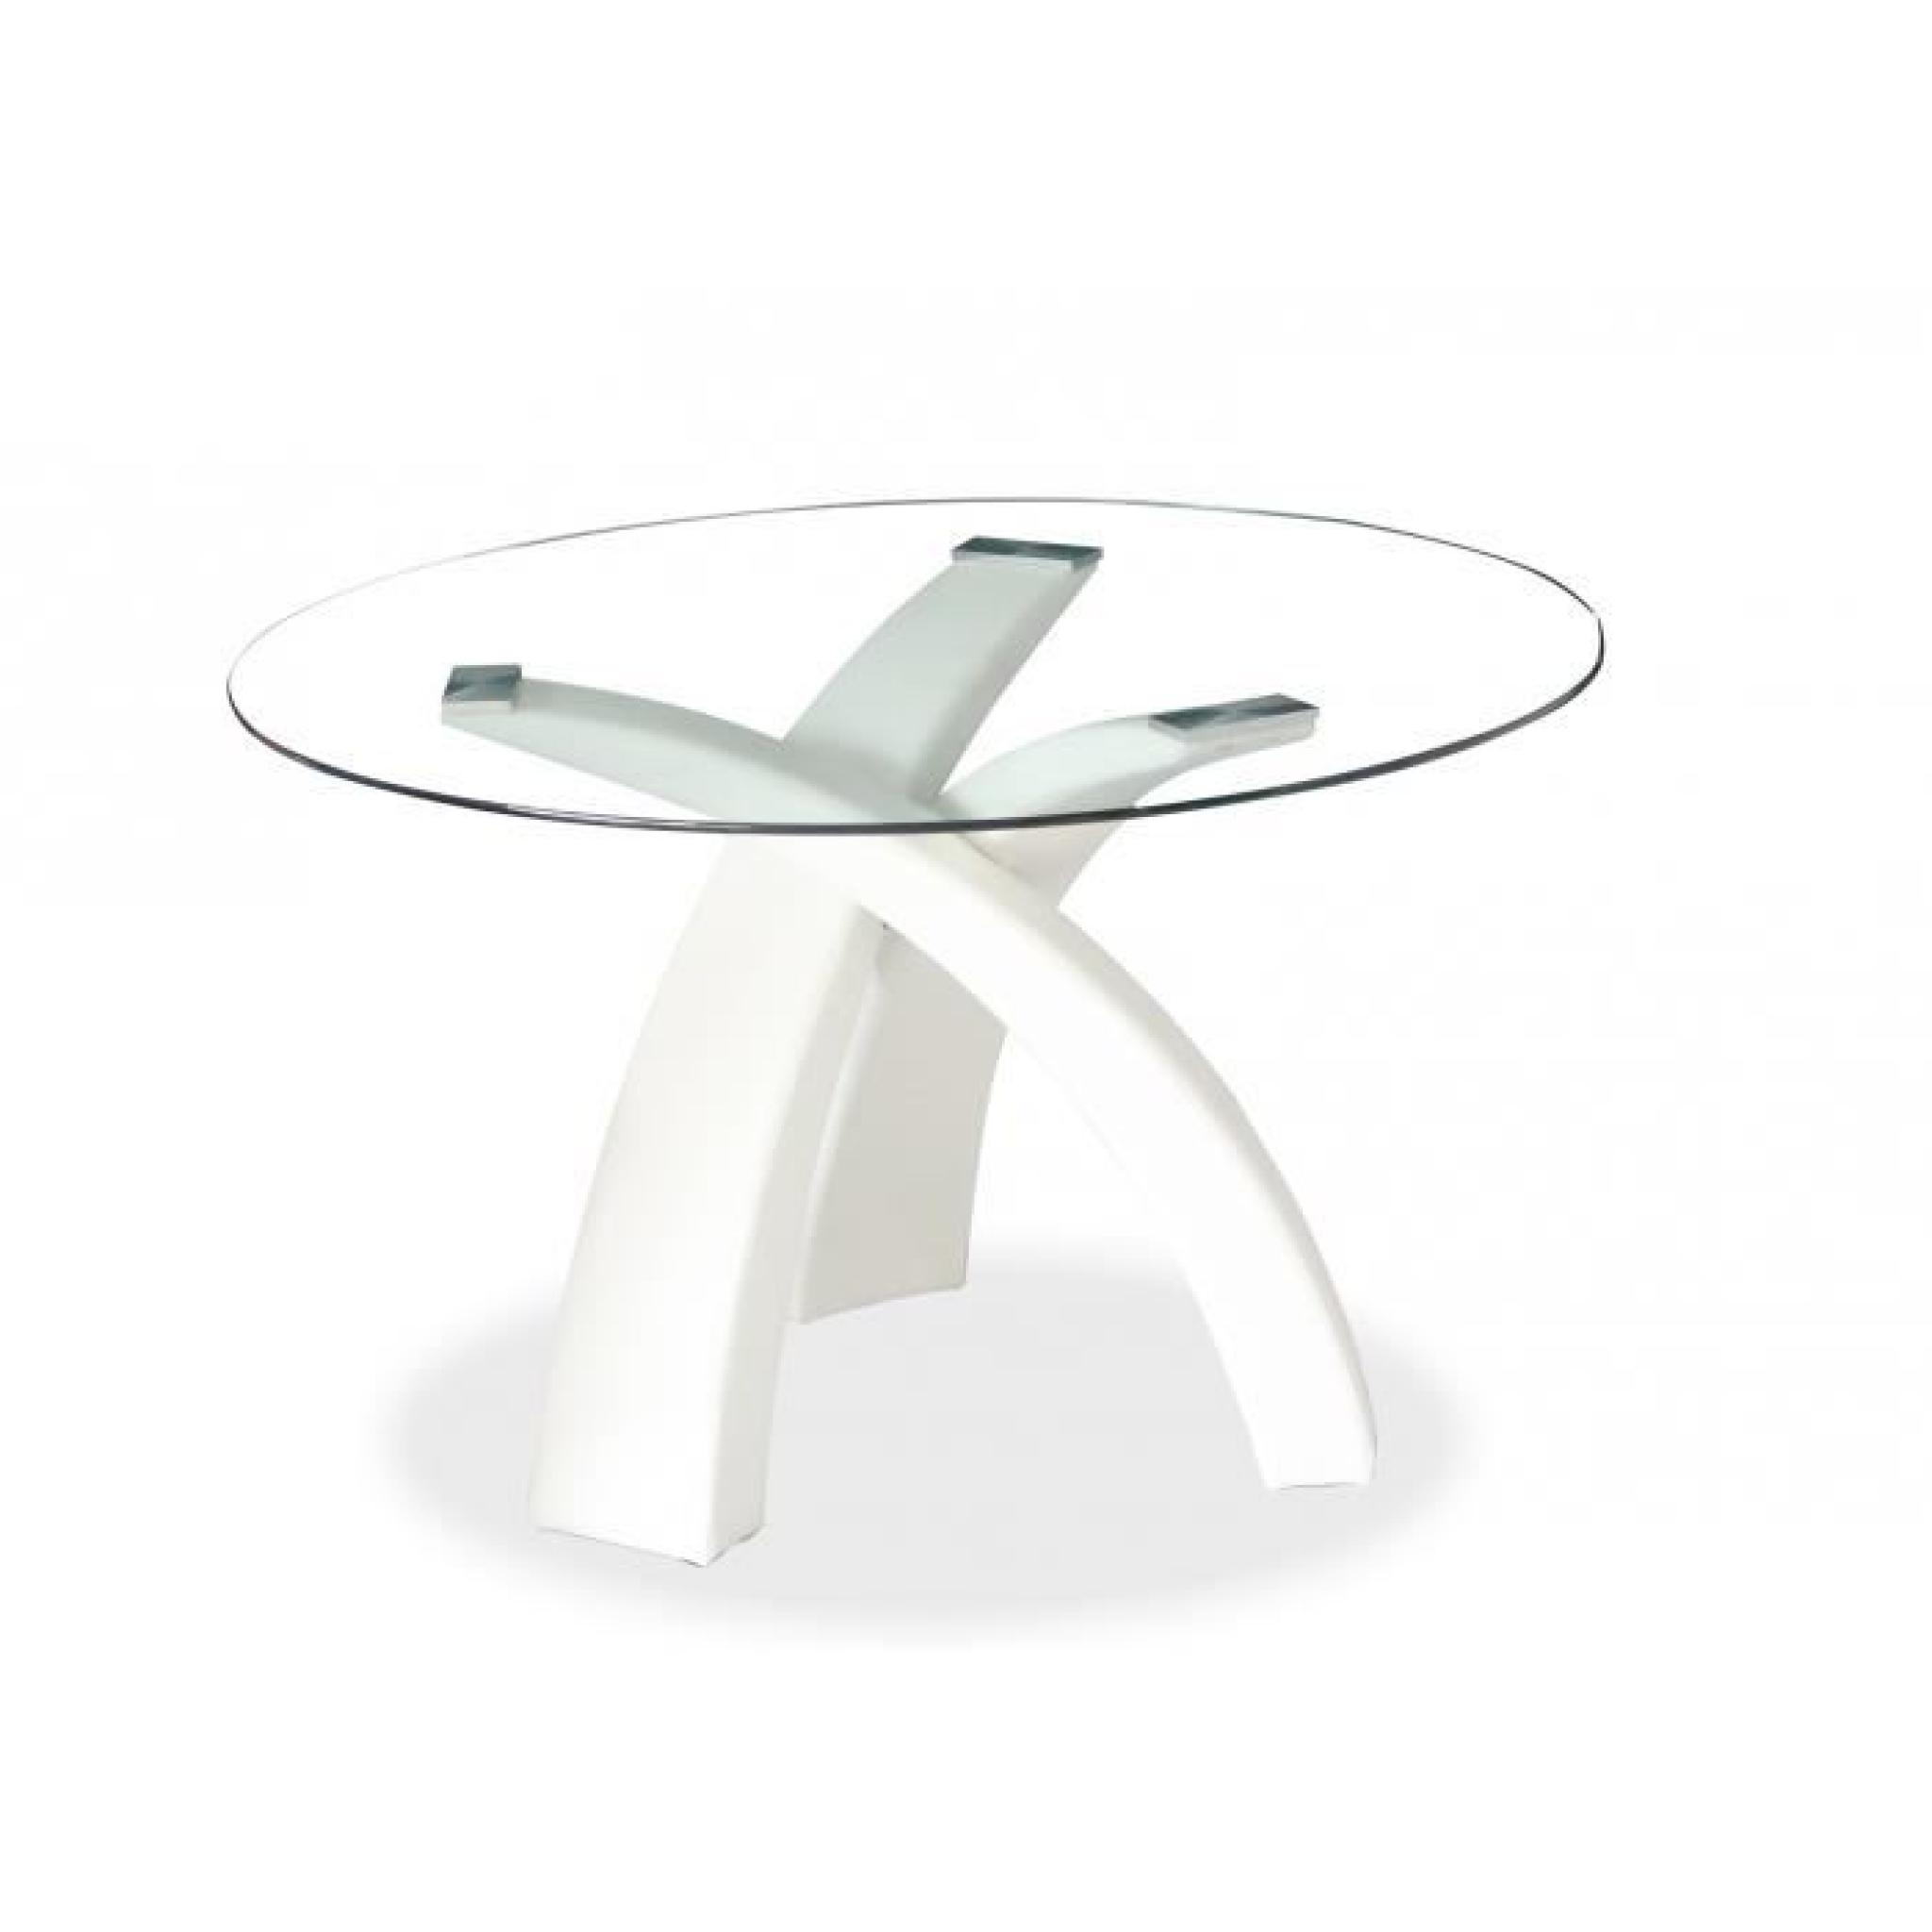 Table manger ronde blanche gore achat vente table for Table salle manger ronde extensible design